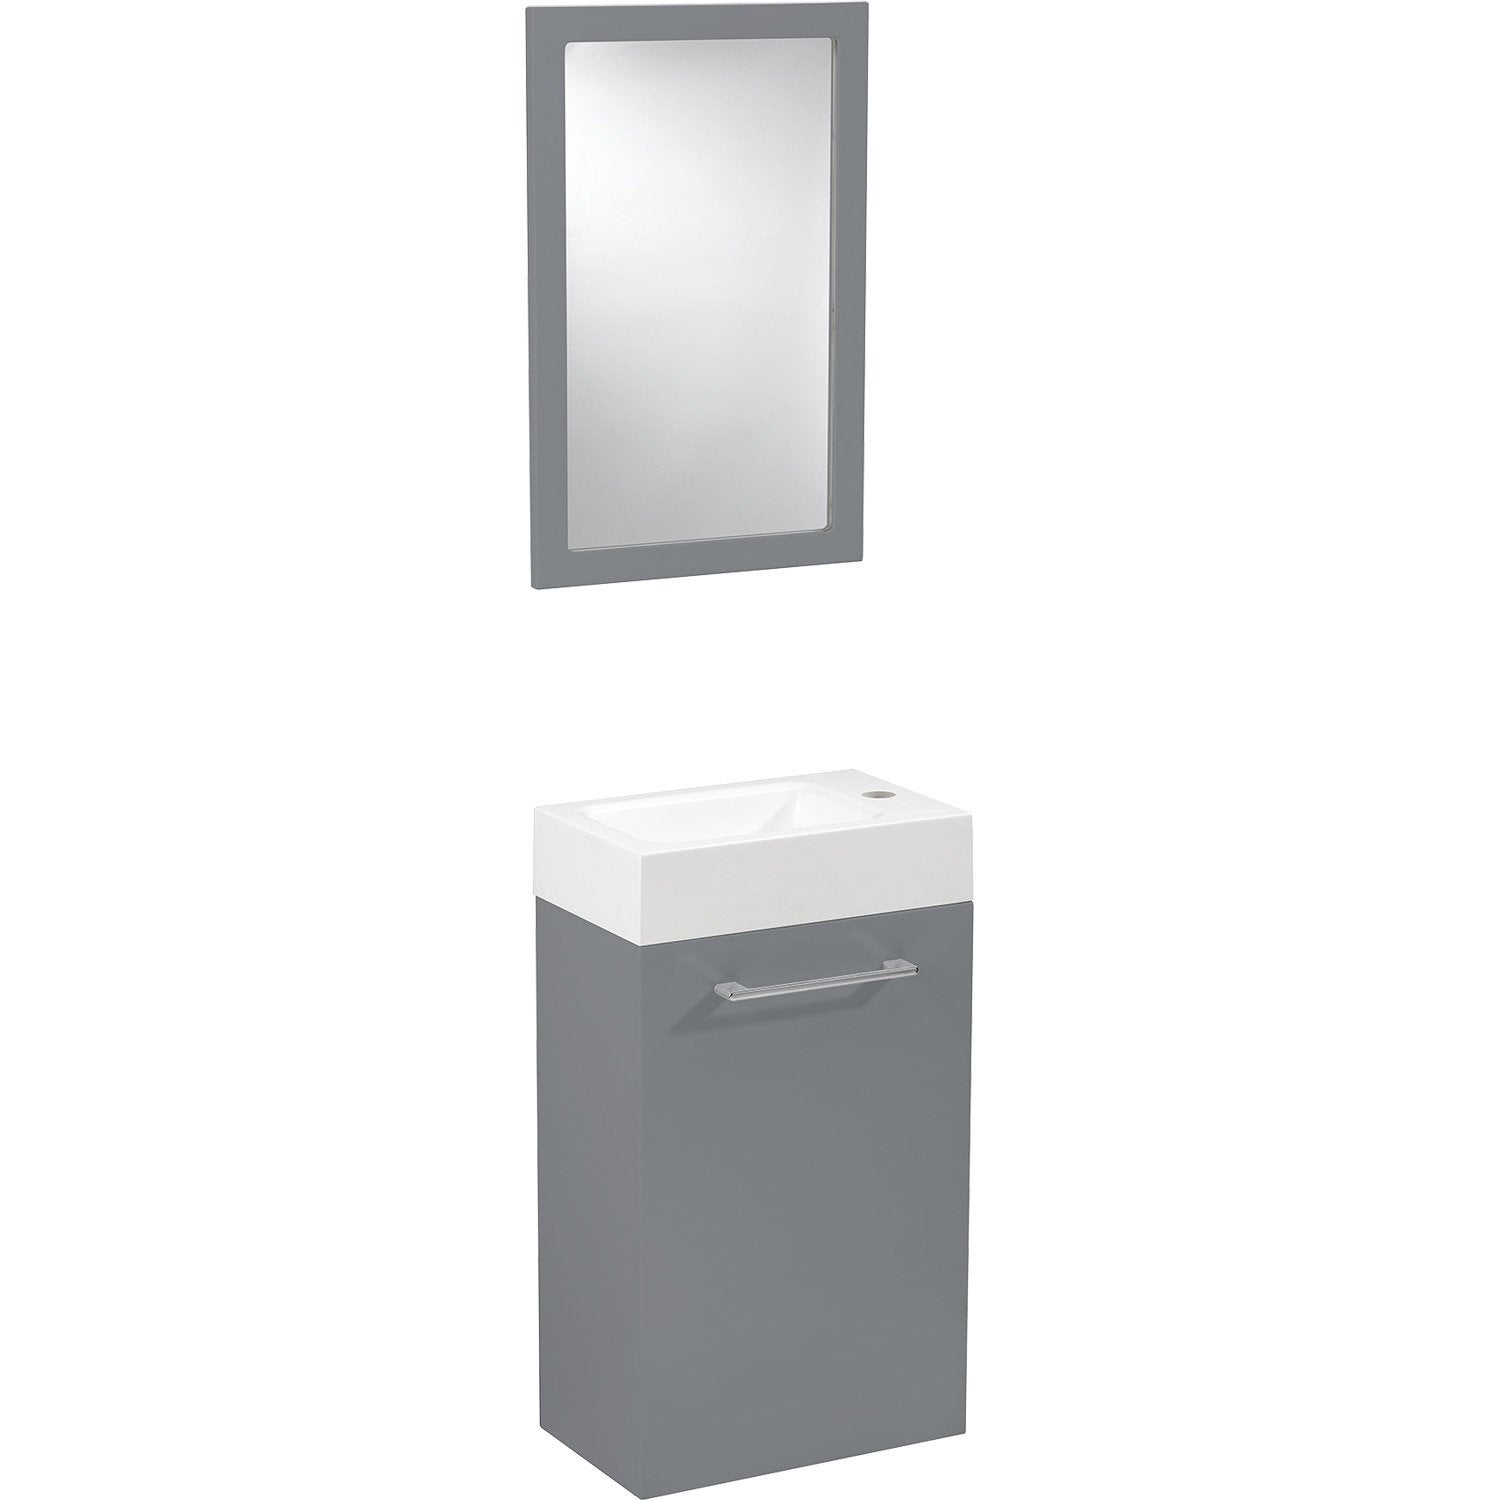 Meuble lave mains avec miroir gris galet n 3 sensea remix for Meuble suspendu leroy merlin